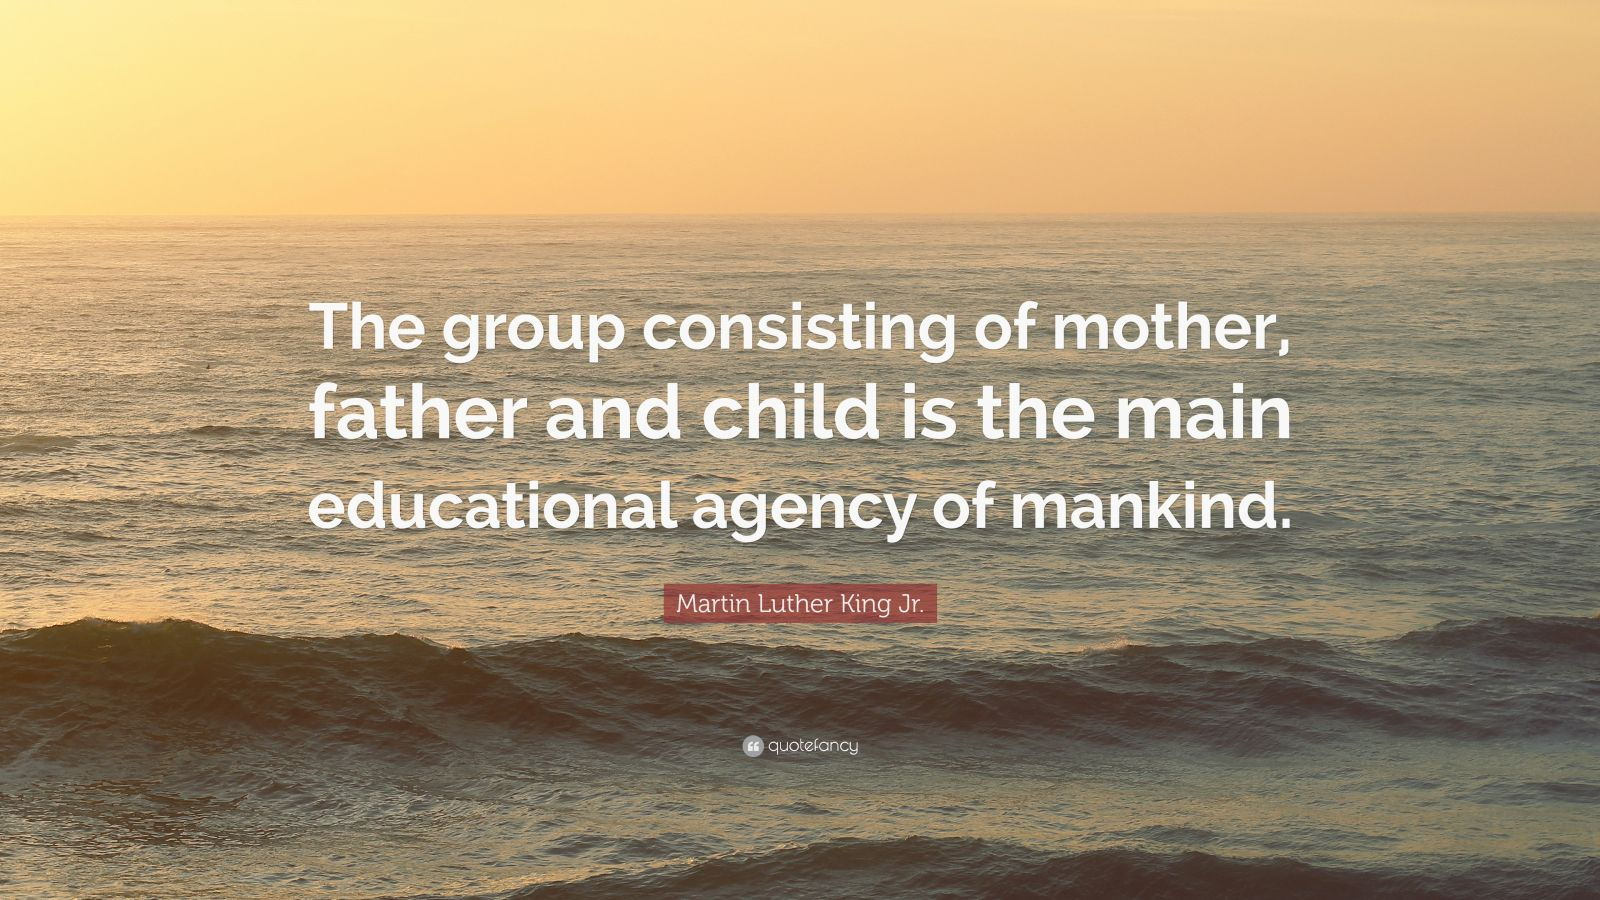 """Martin Luther King Jr. Quote: """"The group consisting of mother, father and child is the main educational agency of mankind."""""""